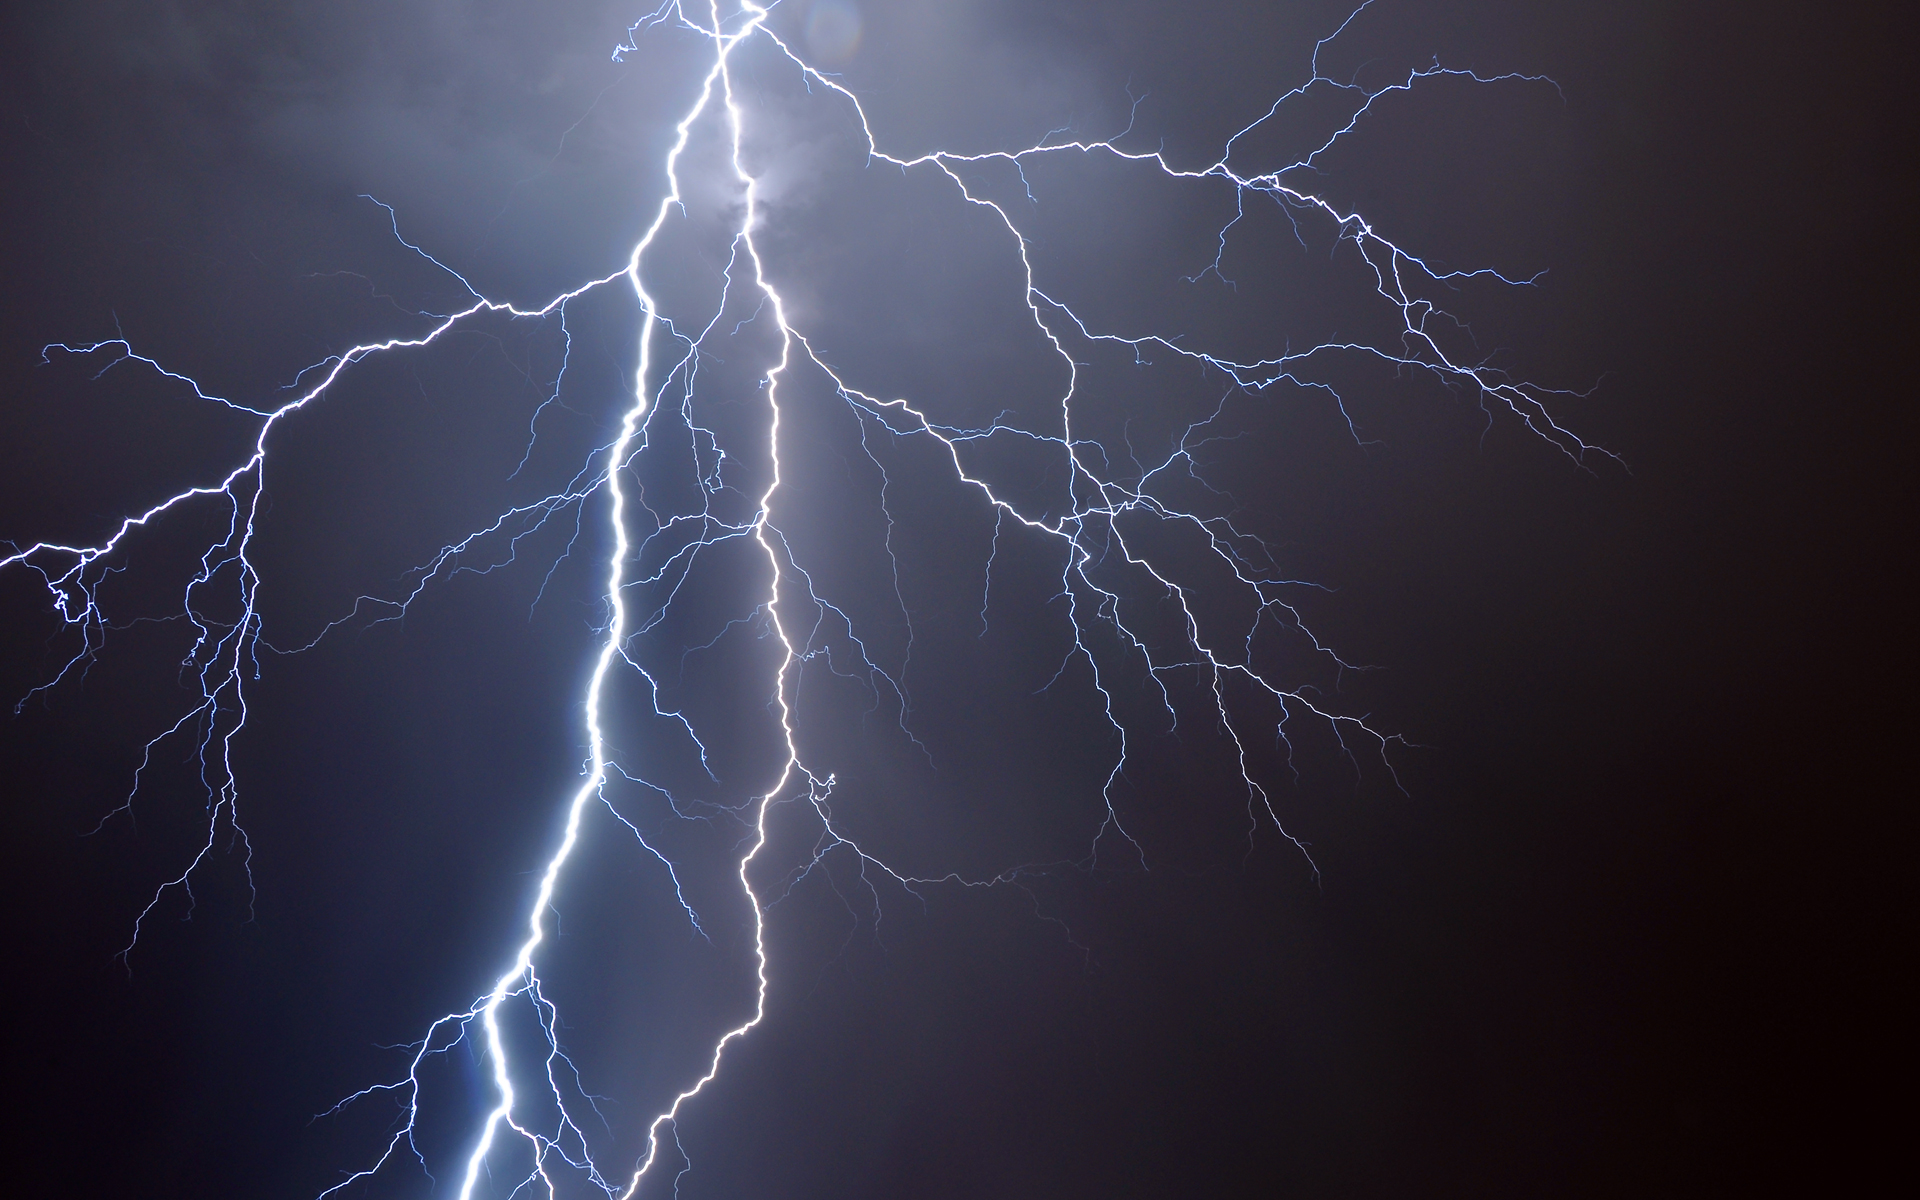 ... and if you want more wallpaper about this theme, you can search for these keywords: lightning bolts, the forces of nature, electrifying sparks, dark